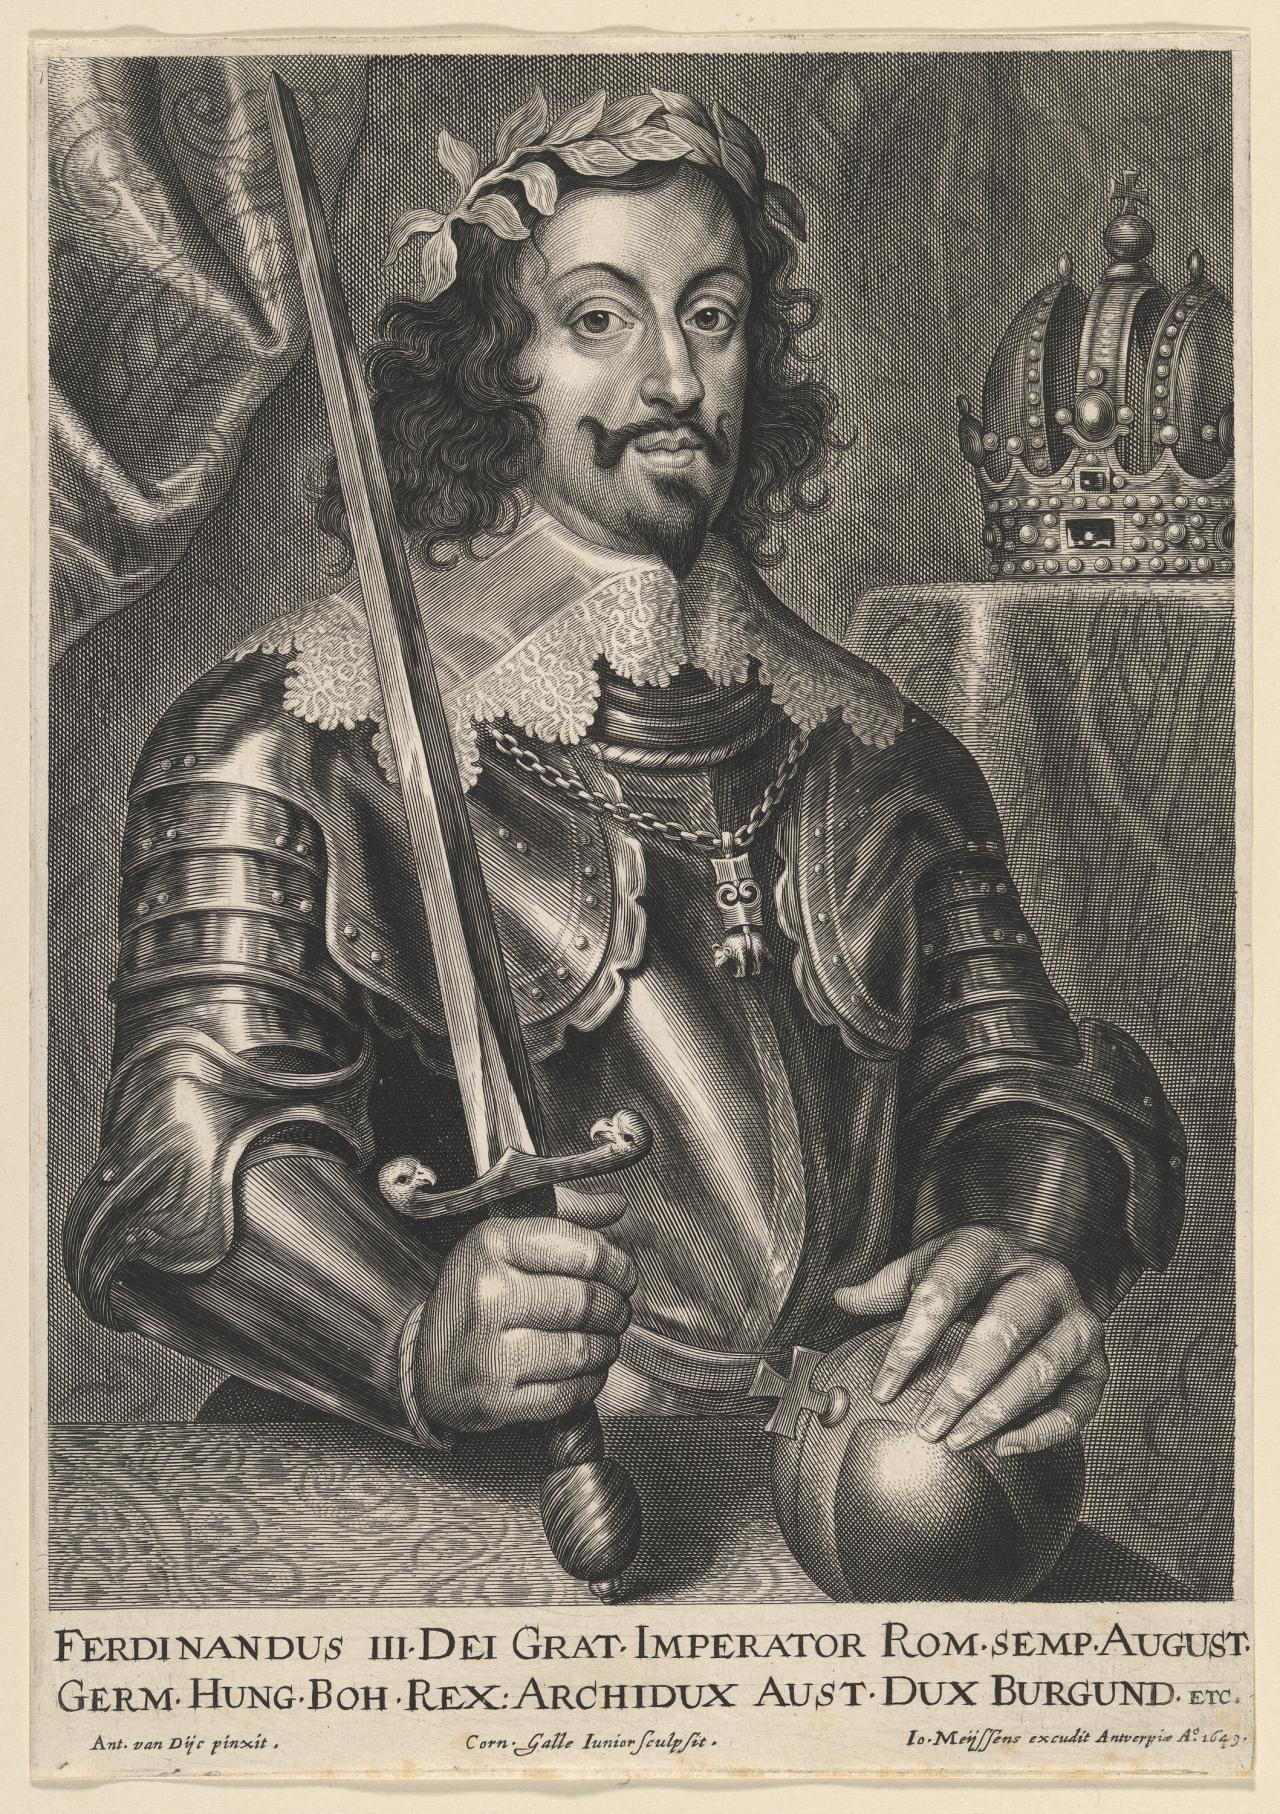 Ferdinand III, Emperor of Germany